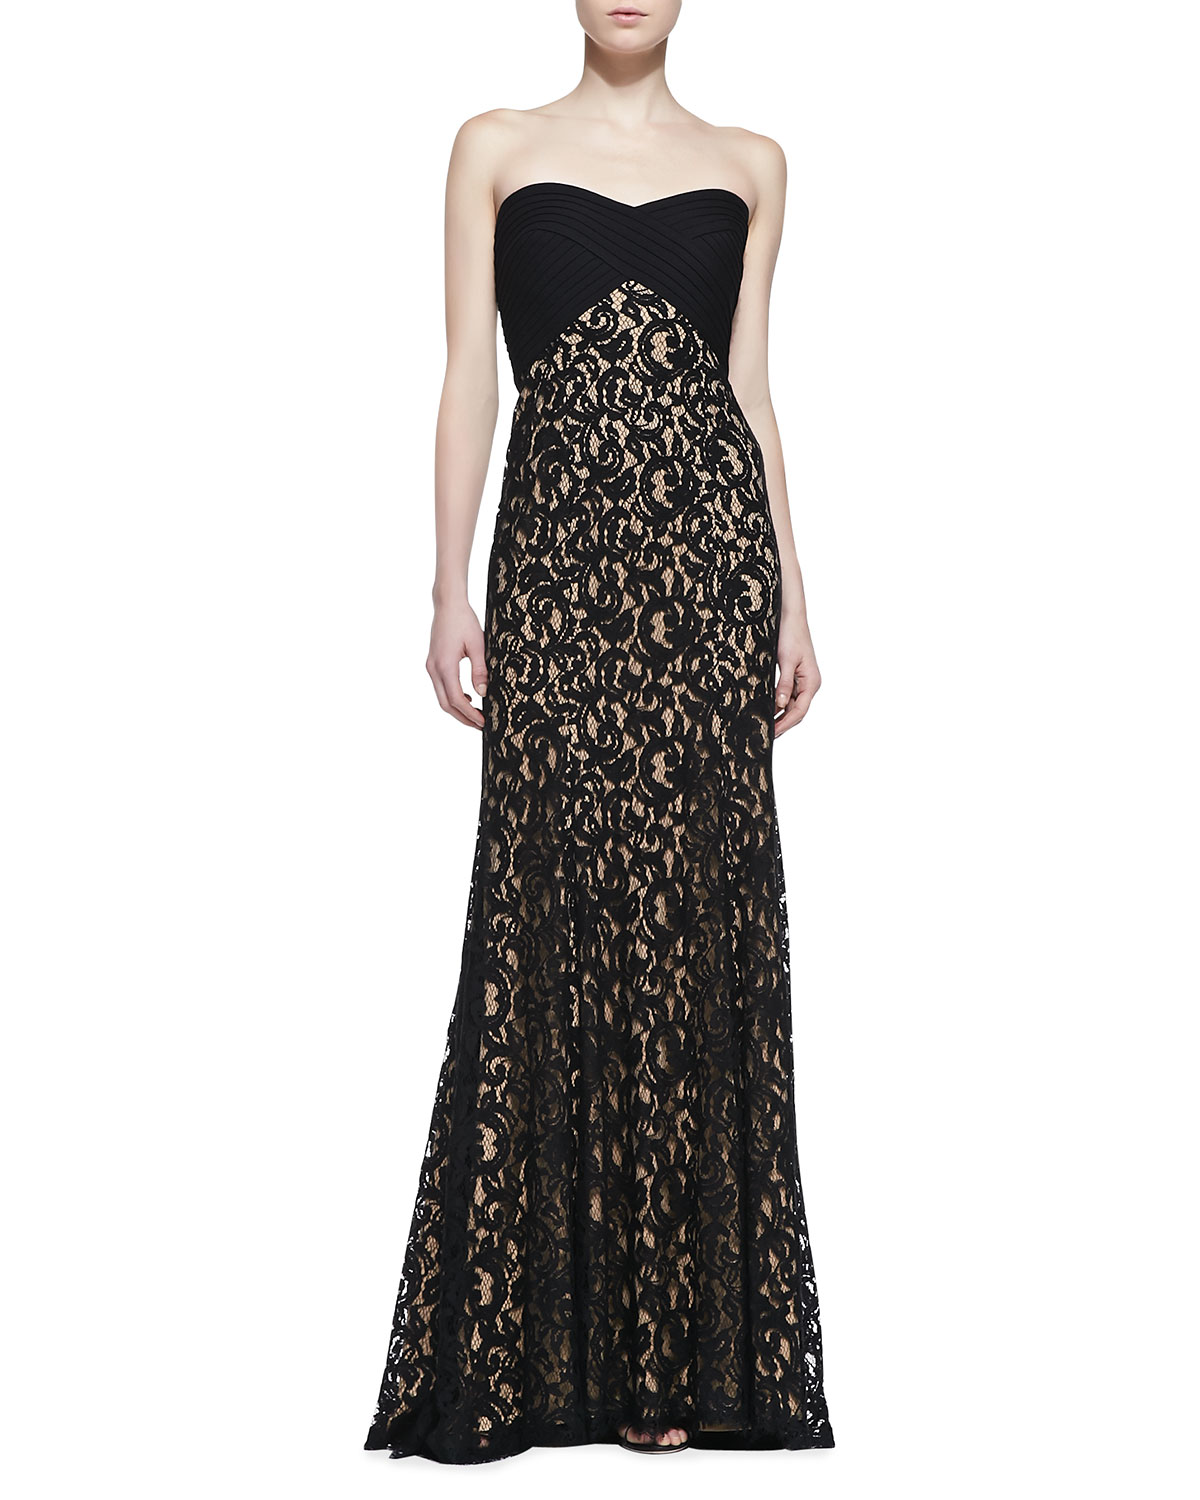 Womens Strapless Lace Gown, Black/Nude   Tadashi